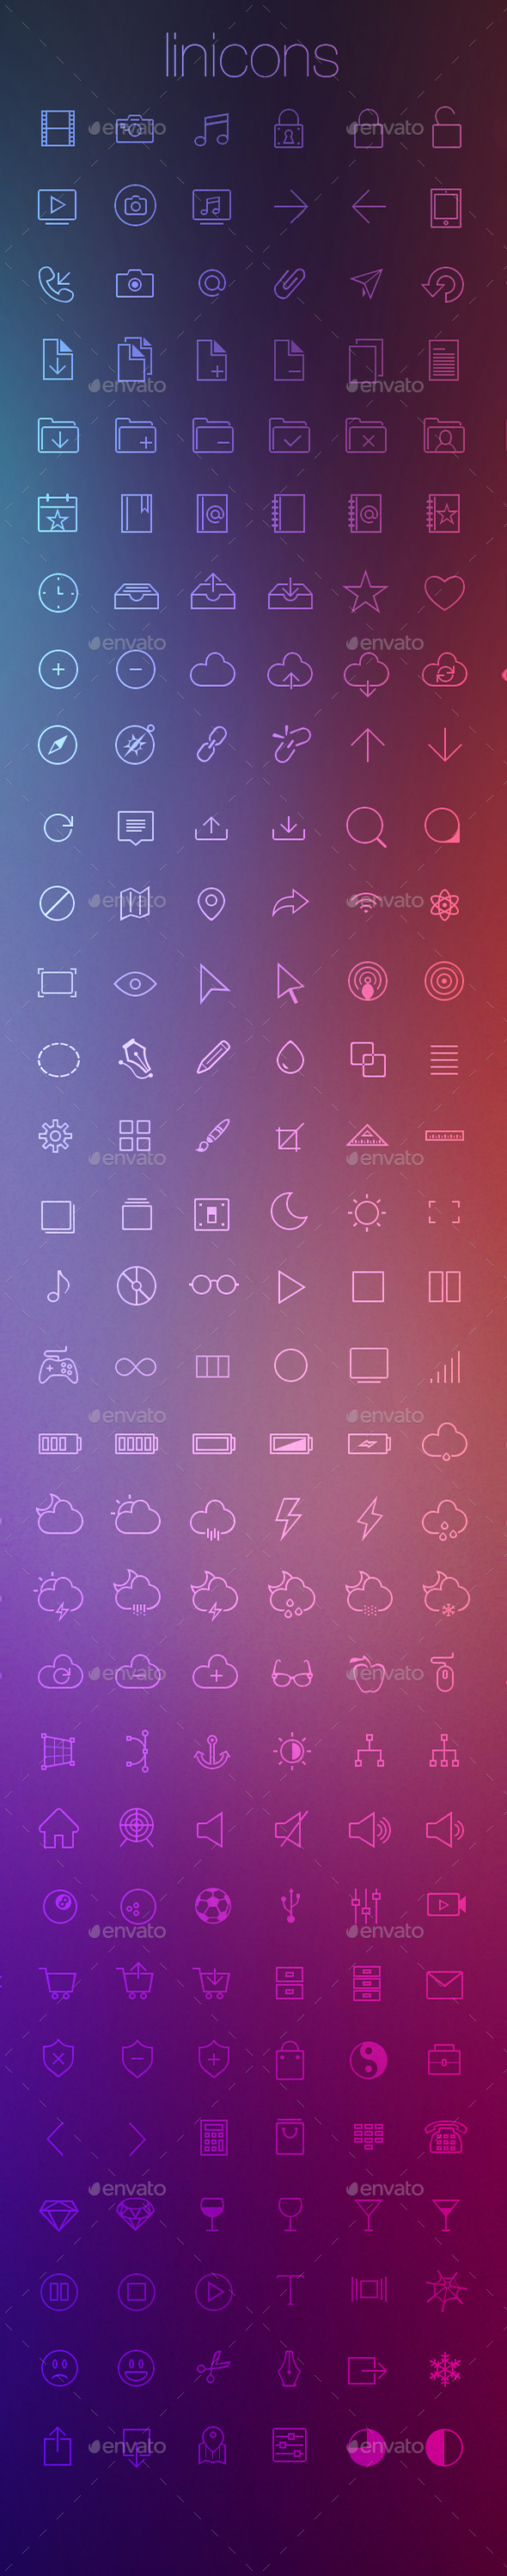 GraphicRiver Linicons 310 stroke icons CSH PSD PNG 5741991